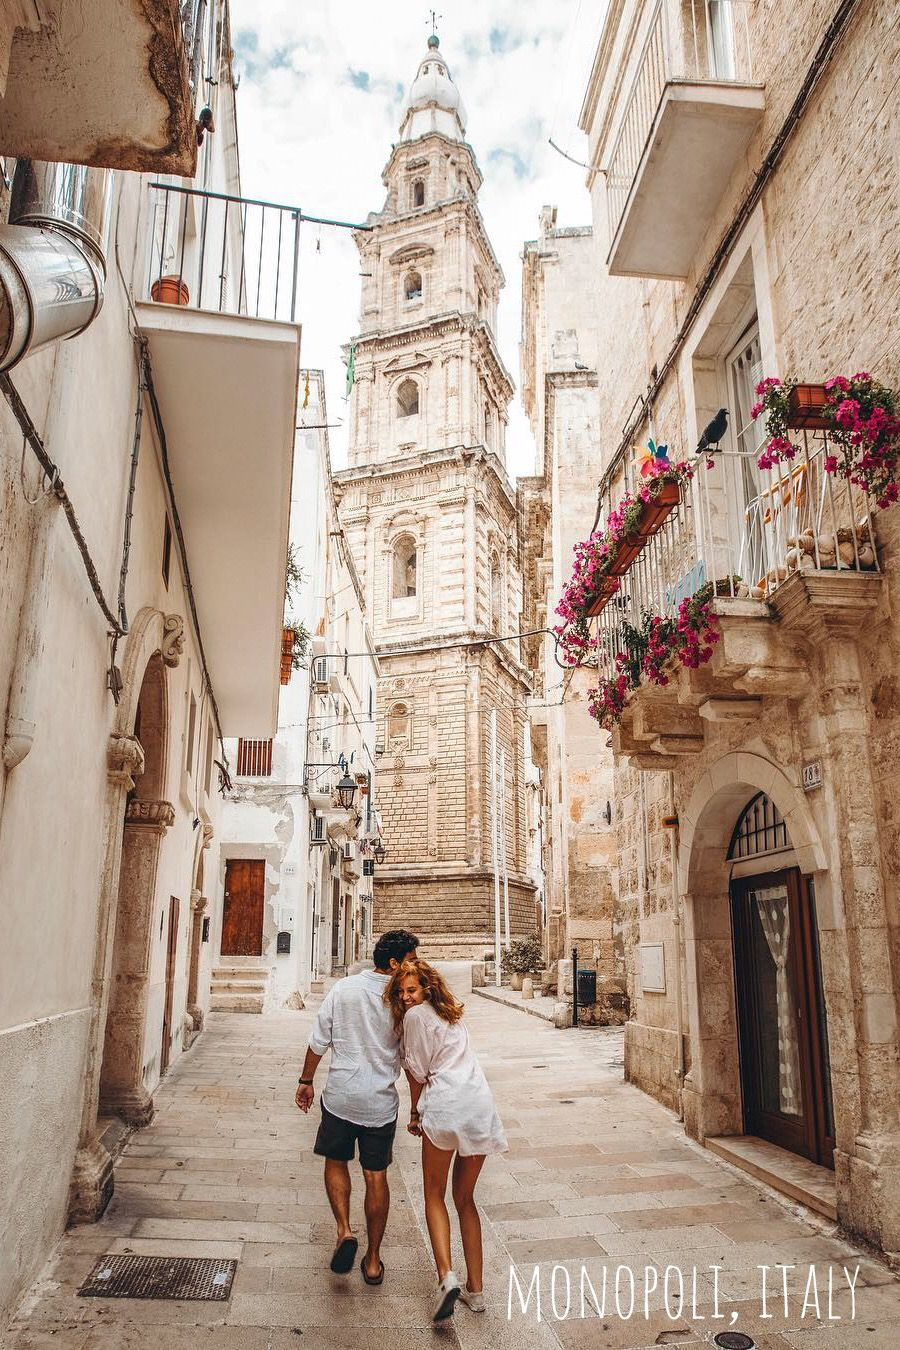 Monopoli Italy Monopoli Is A Town And Municipality In Italy In The Province Of Bari And Region Of A Travel Pose Couples Travel Pictures Couple Travel Photos